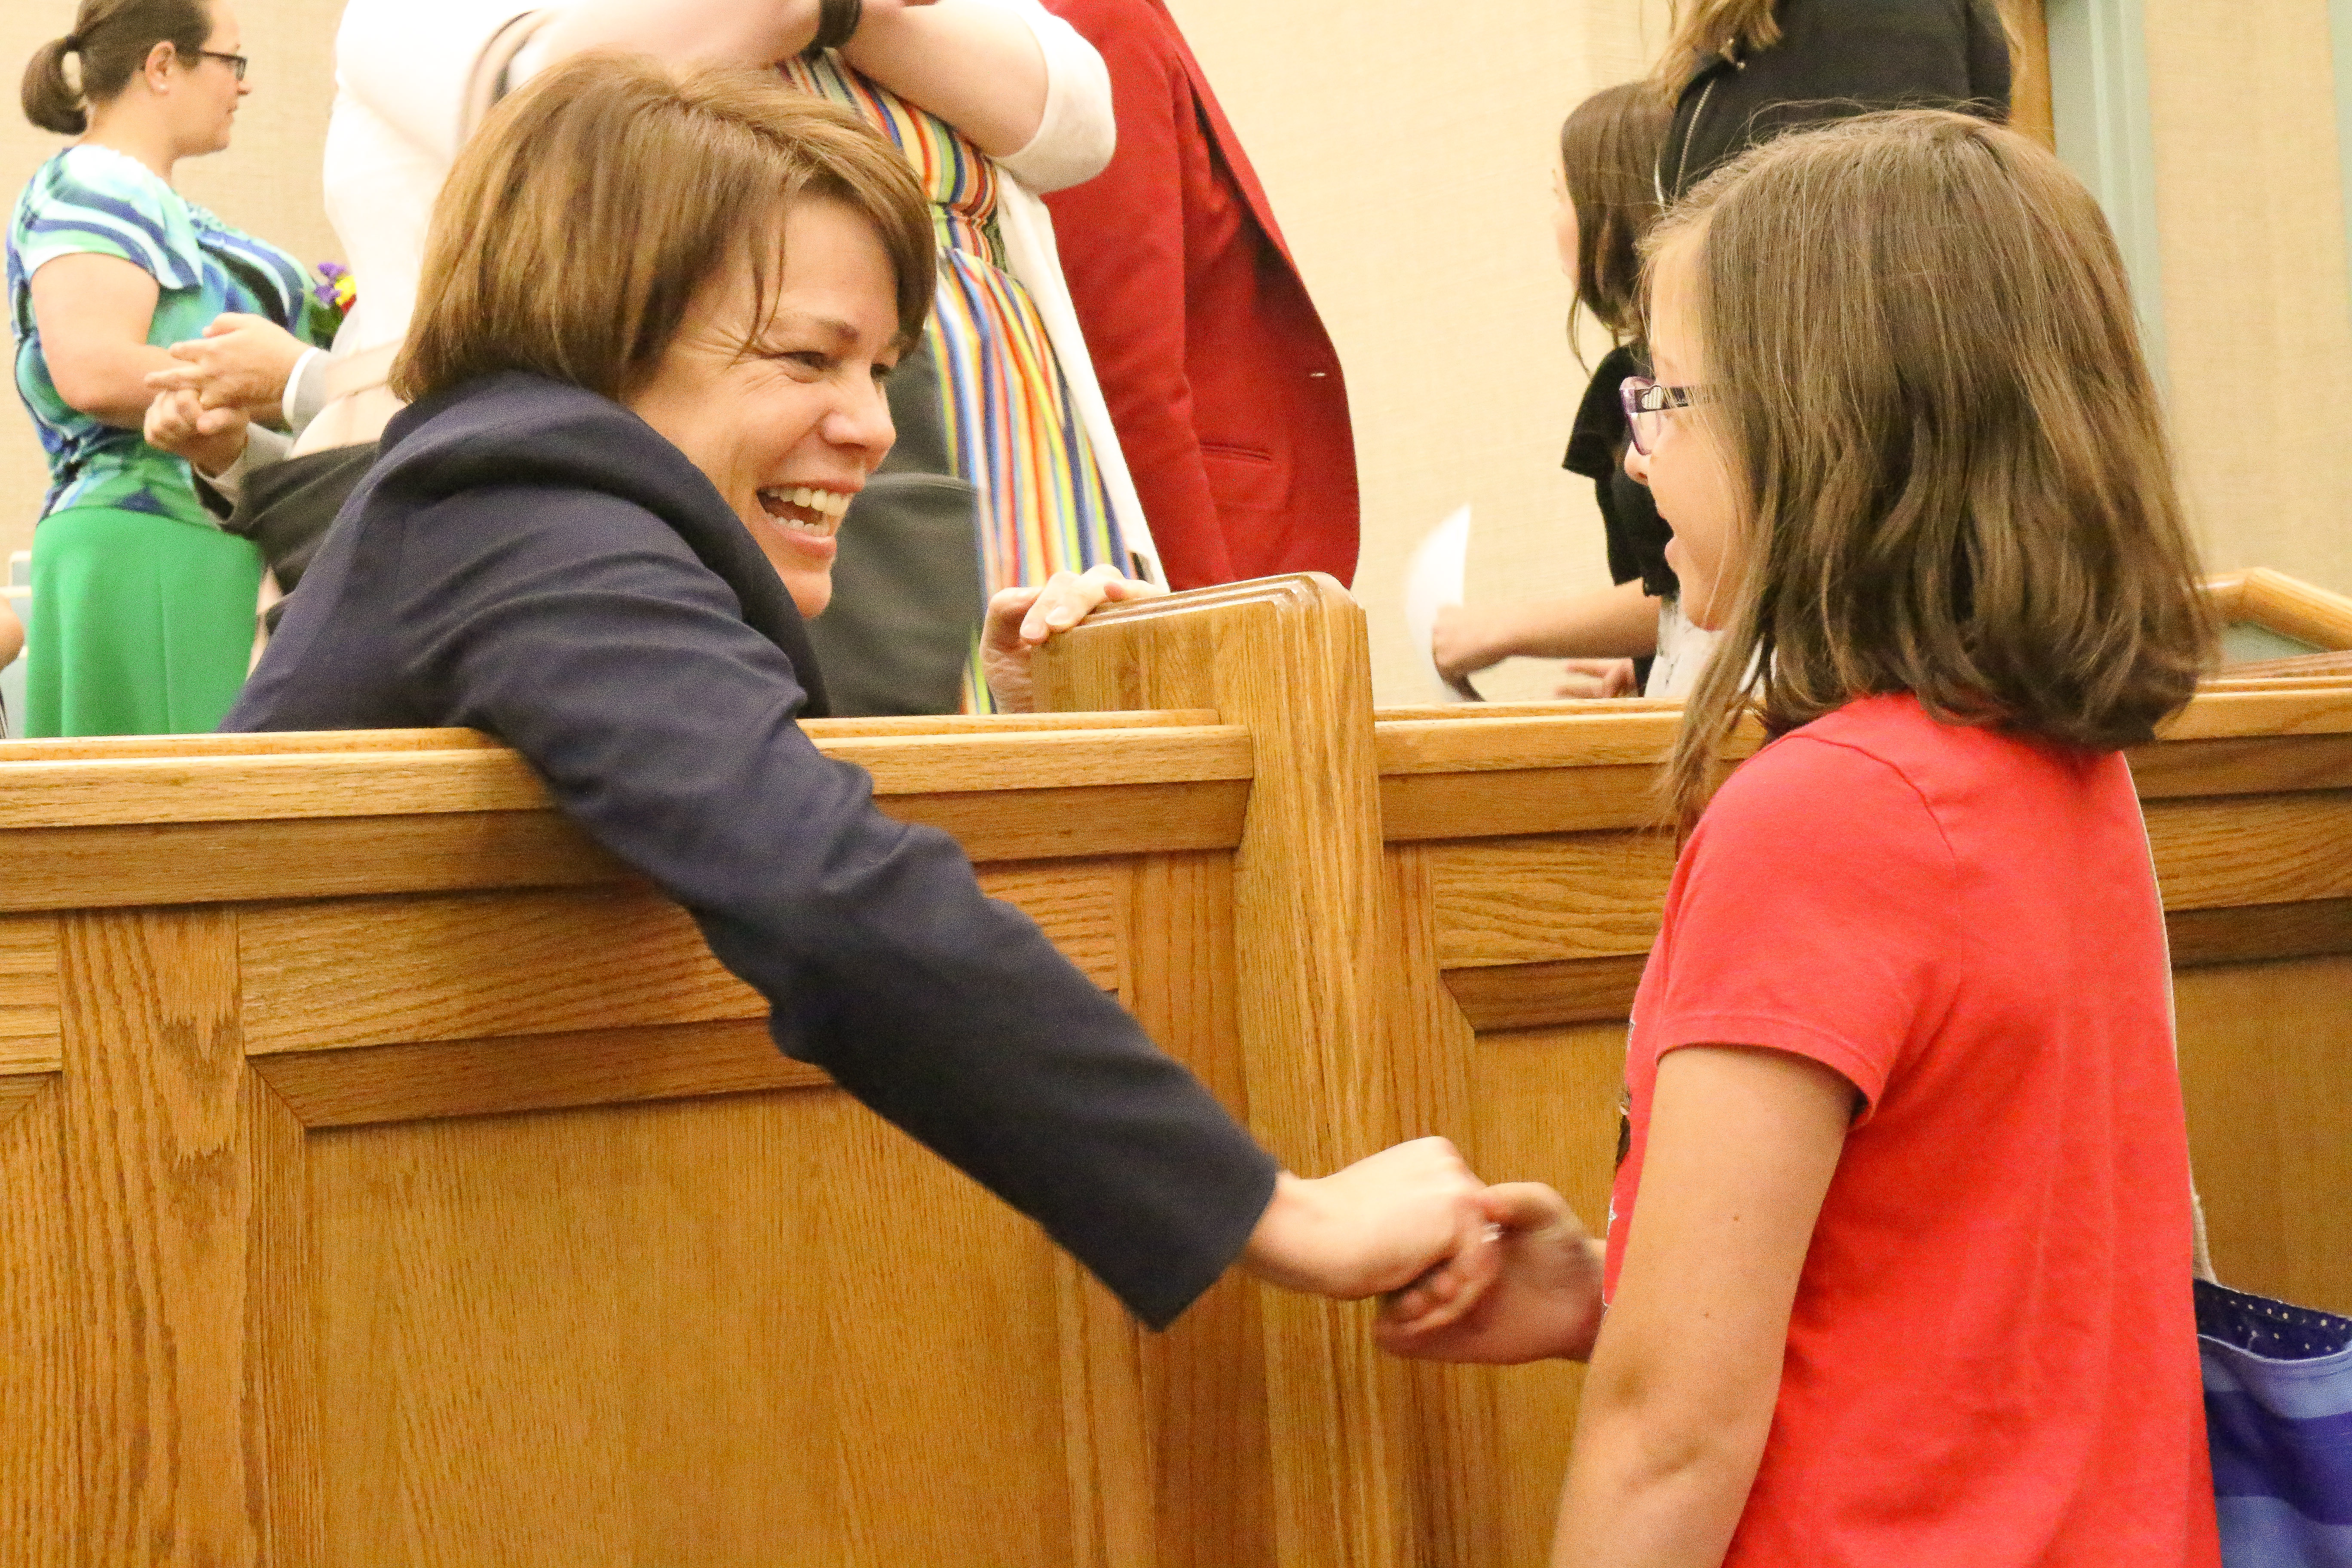 Sister Sharon Eubank, first counselor in the Relief Society general presidency, greets a youth following a multi-stake youth devotional at the Bremerton Washington Stake center on Saturday, Aug. 17, 2019.